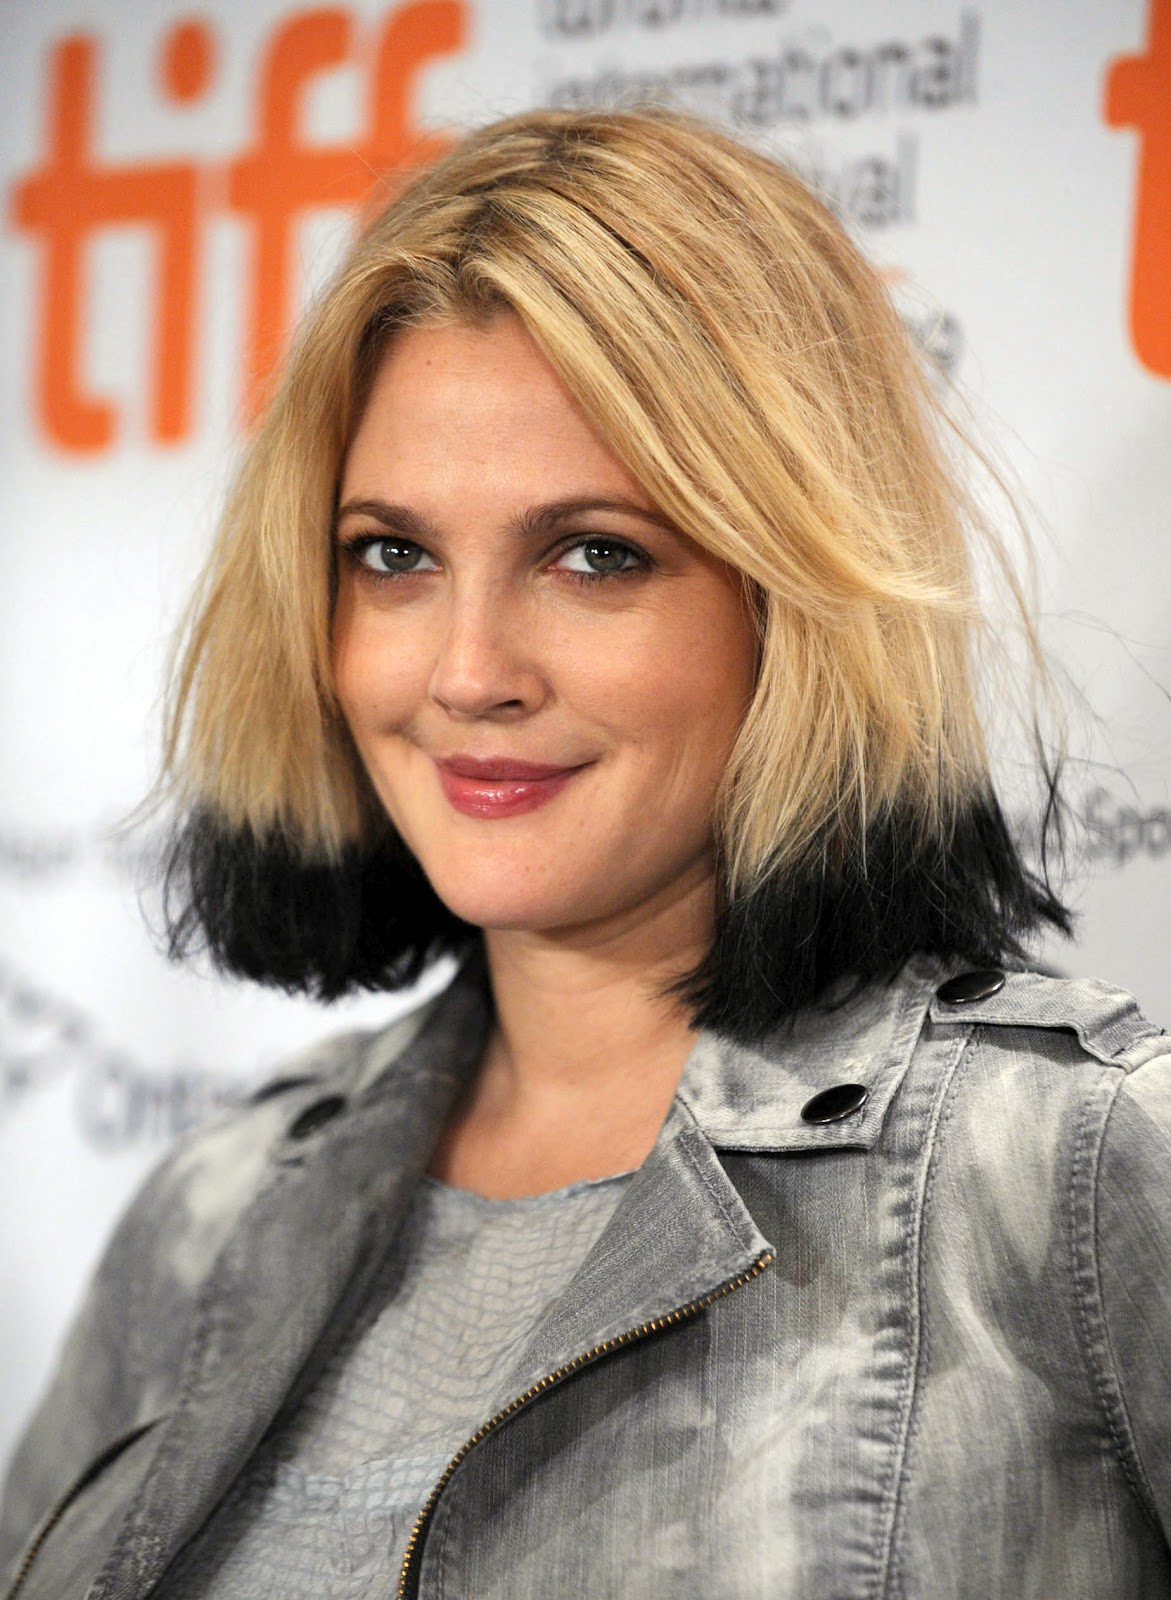 Short Black Hair With Blonde Ends